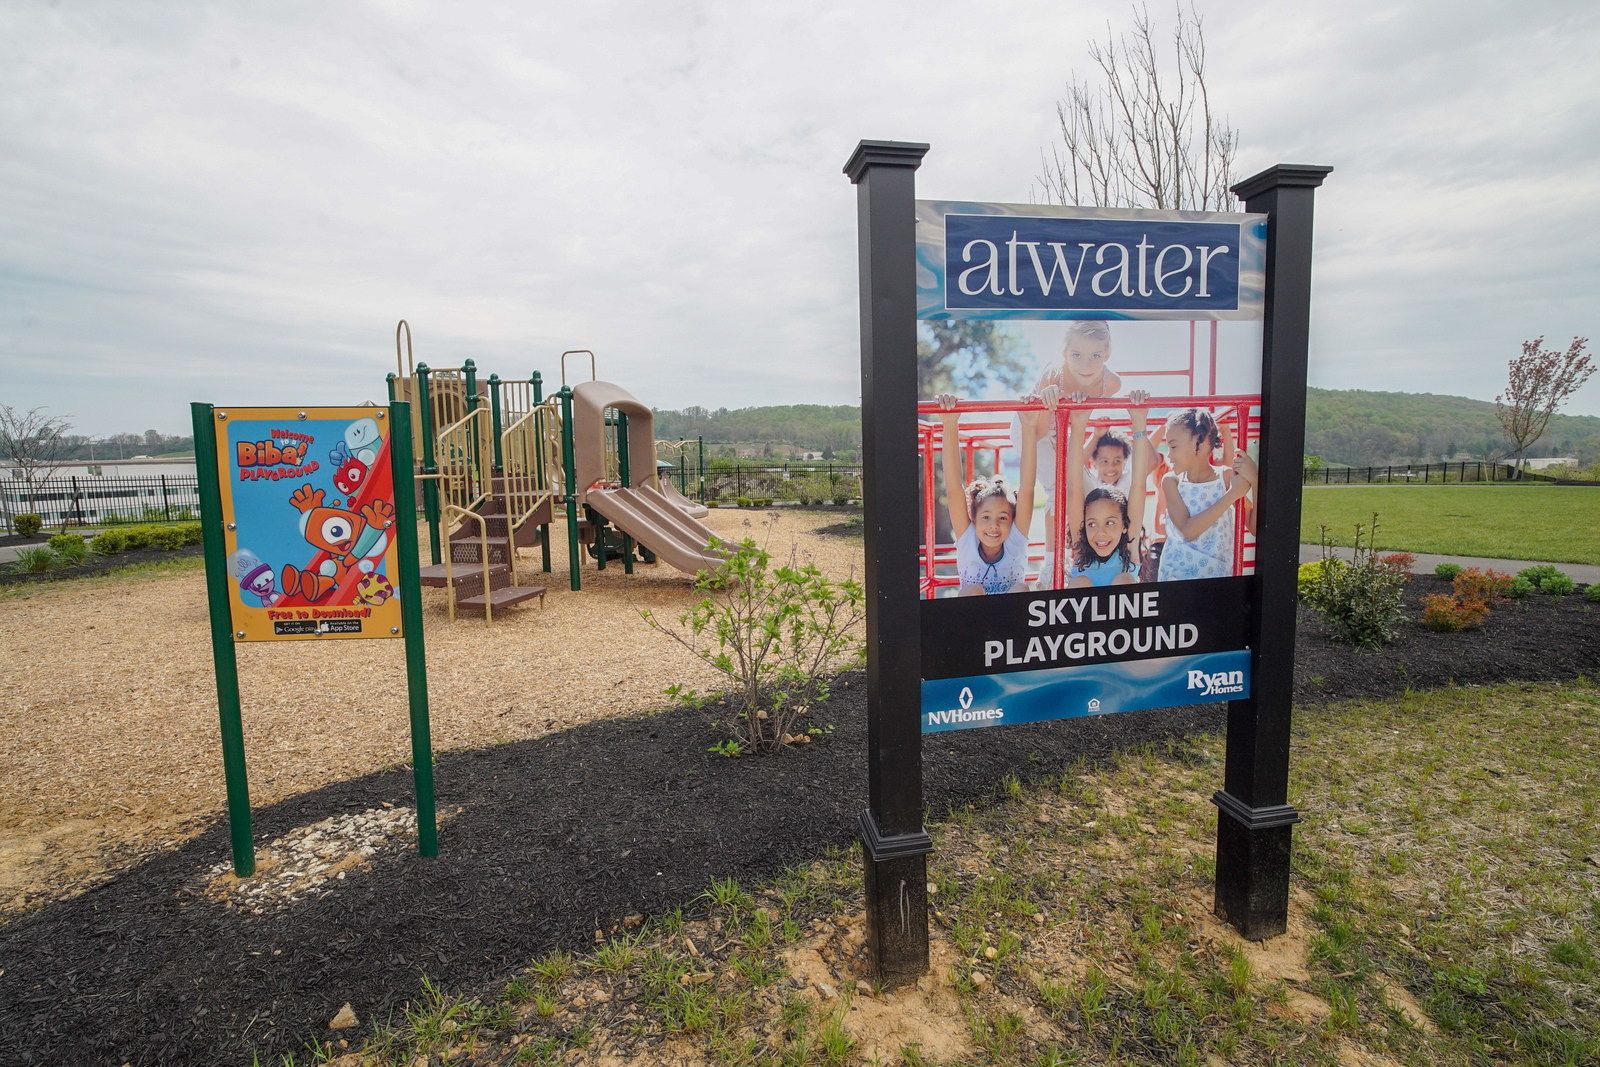 Walk over to one of 2 playgrounds within the community and enjoy the summer weather.